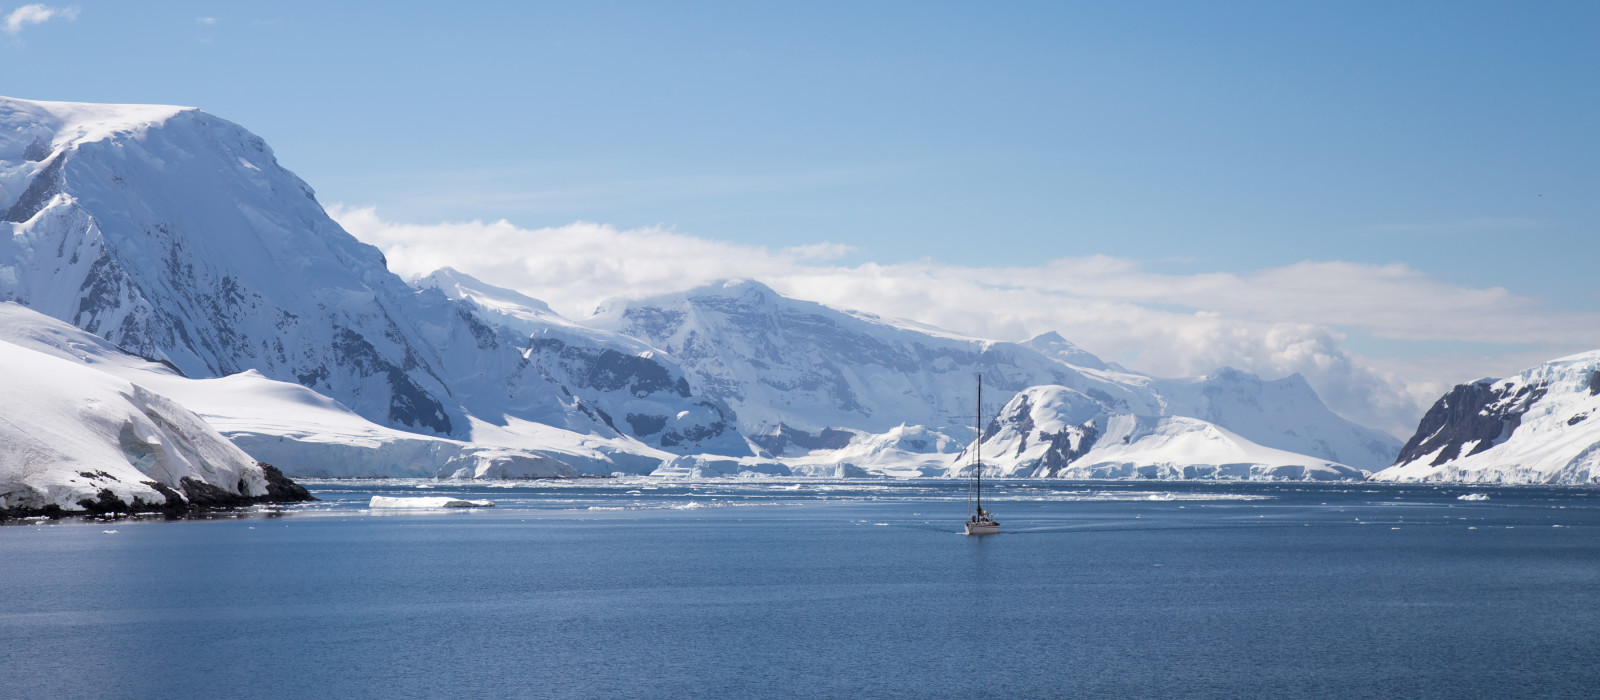 Antarctica travel guide - Ship sails through the neumayer channel, Antarctic